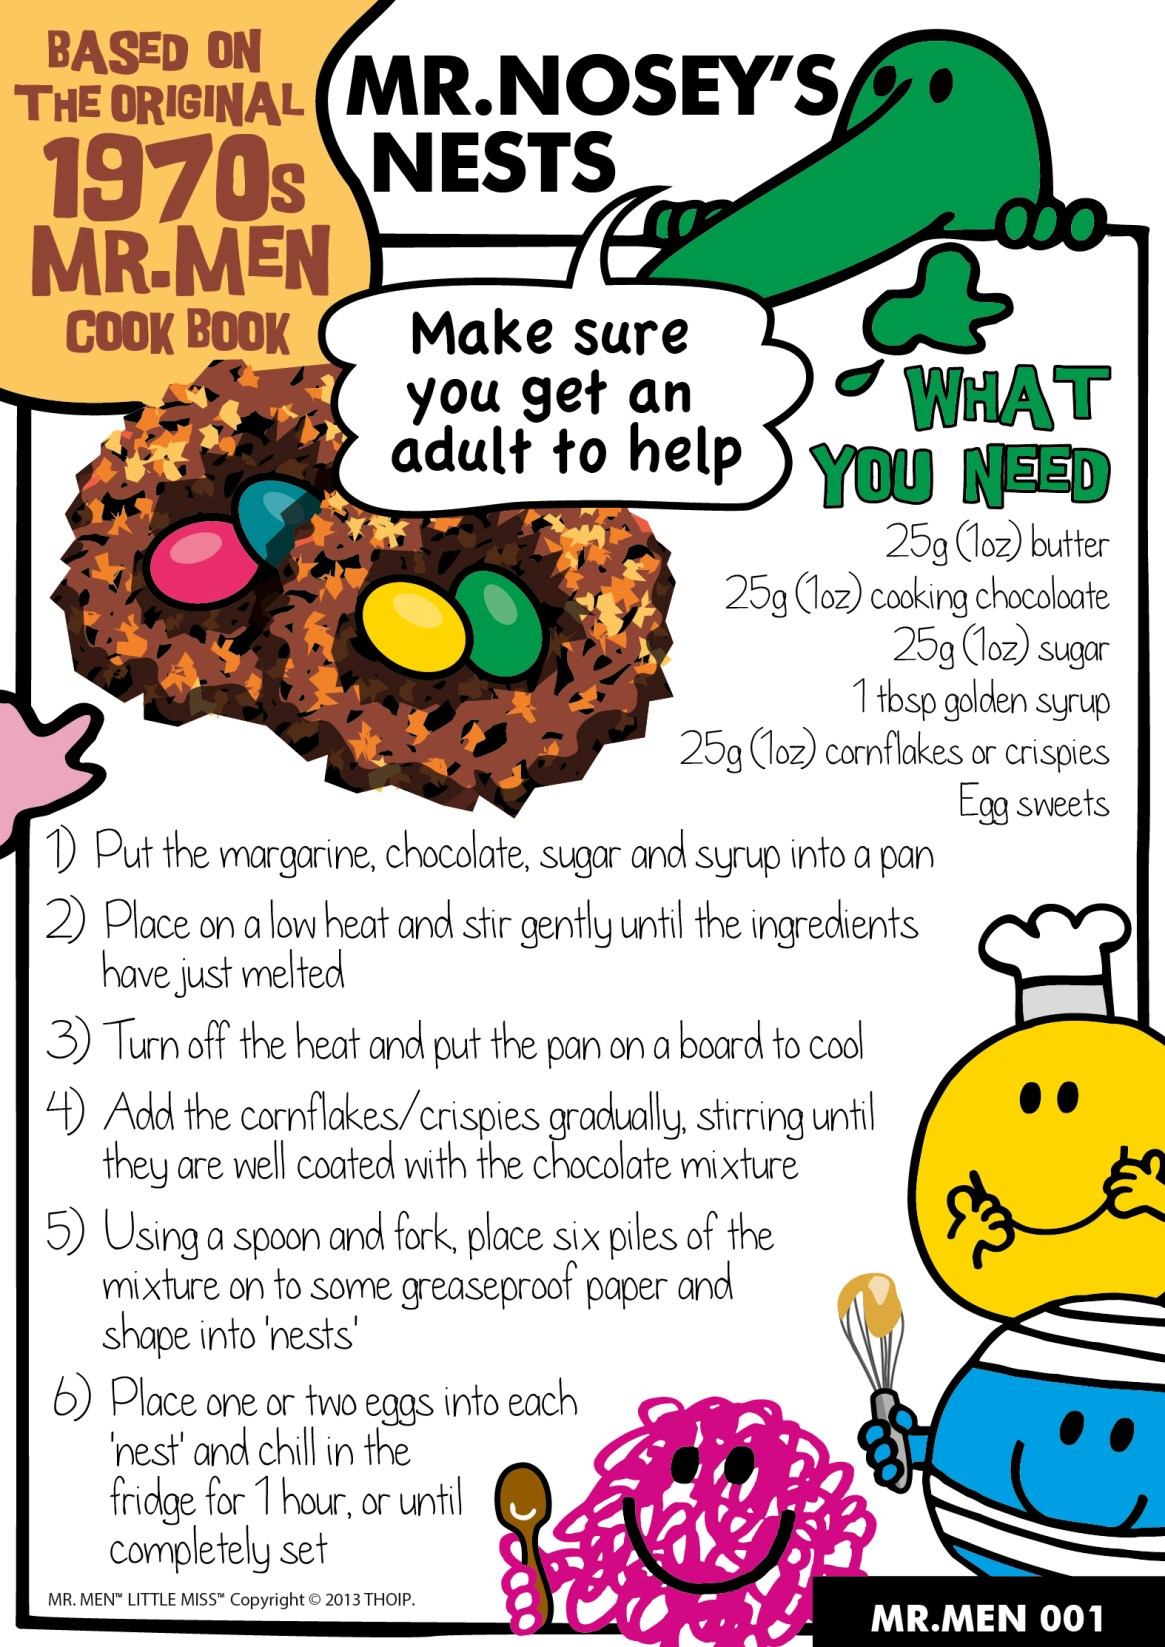 Mr Nosey's Nests. Traditional kids baking recipe for chocolate nests, with a mr men theme